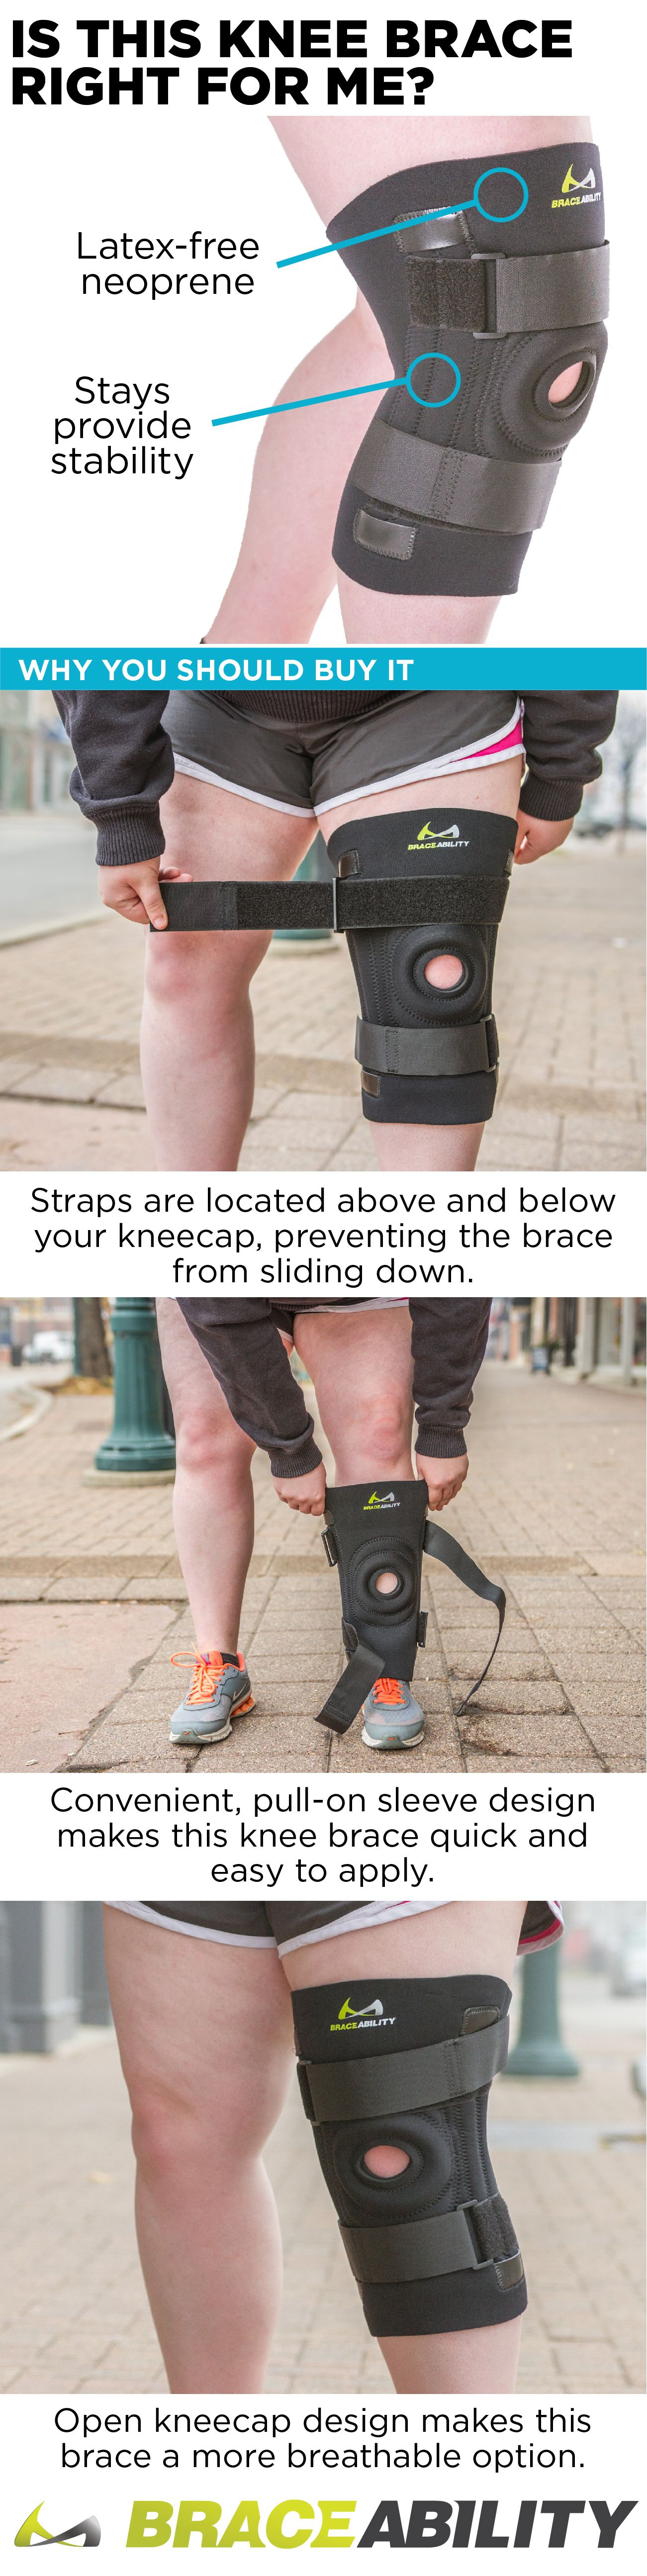 b21c819957 This knee brace for overweight or obese people with big legs and thighs has  an easy, slip-on design and is comfortable to wear all day.